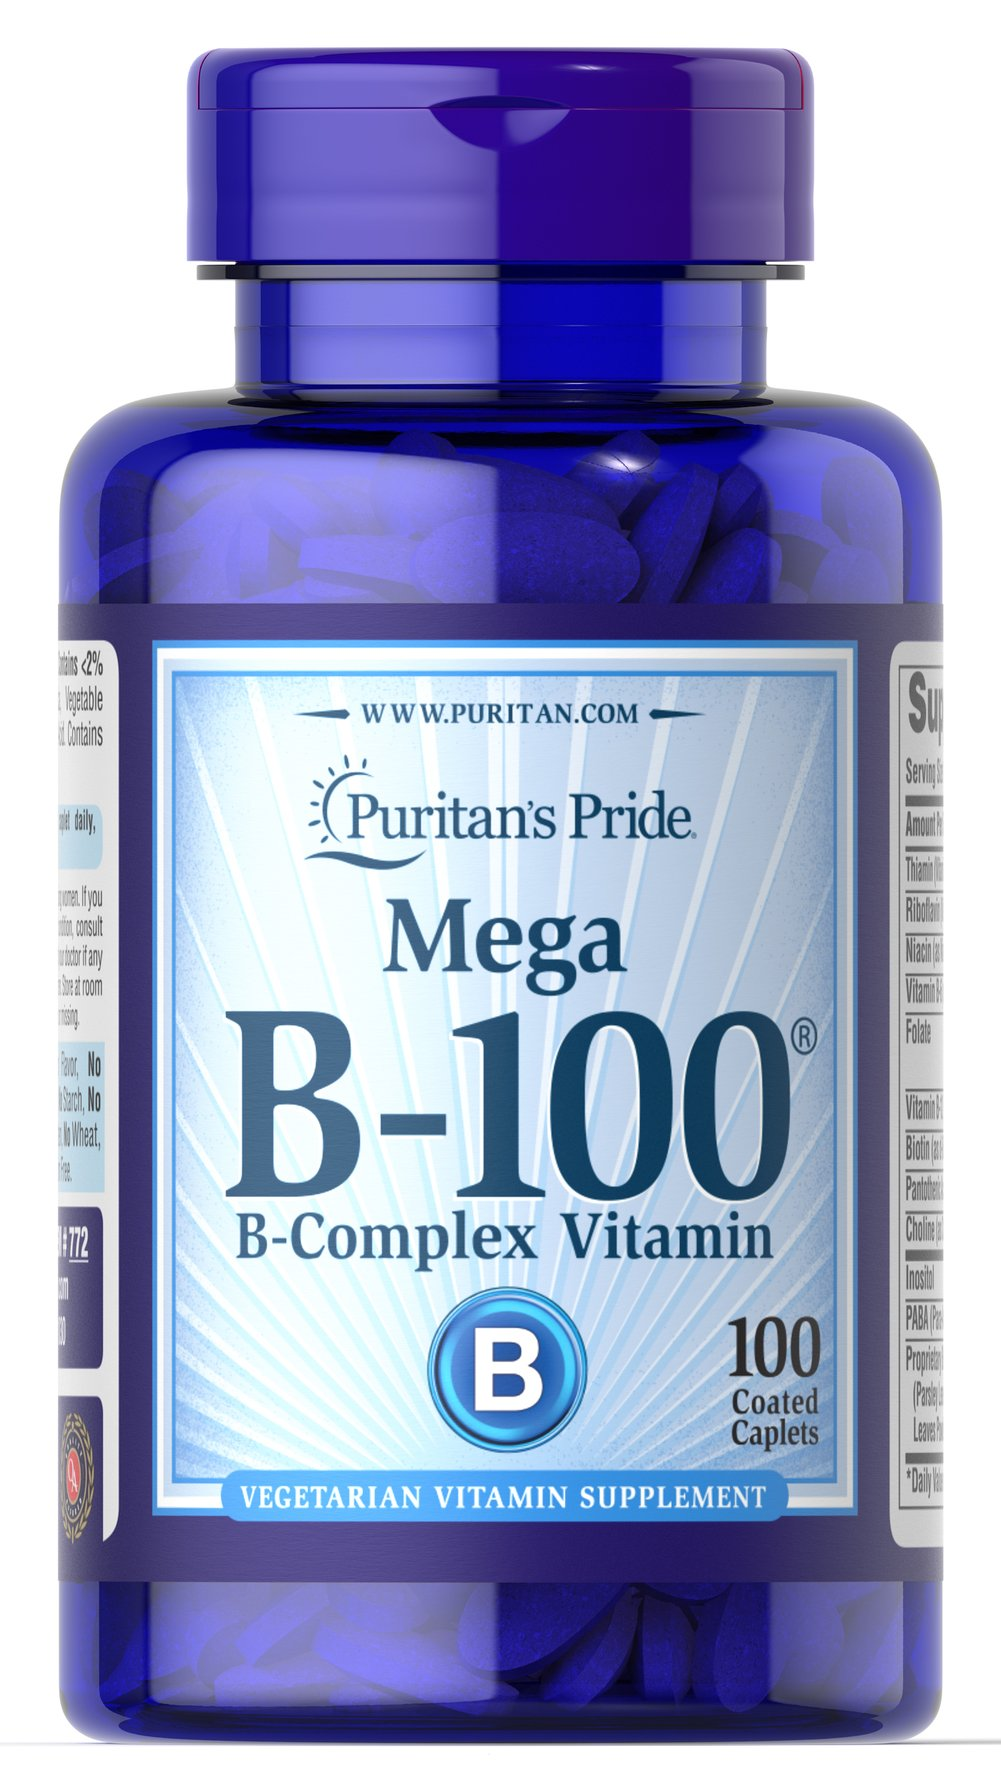 Vitamin B-100® Complex <p>The Vitamin B-100 Complex is made up of several vitamins that work well together to support nervous system health.** B Complex vitamins also promote energy metabolism.** Each nutrient in the B Complex performs a unique role in maintaining proper metabolic functioning and is essential for well being.**</p><p>This product delivers B-1, B-2, Niacin, B-6, Inositol, PABA, Pantothenic Acid and Choline, as well B-12, Biotin and Folic Acid.</p> 100